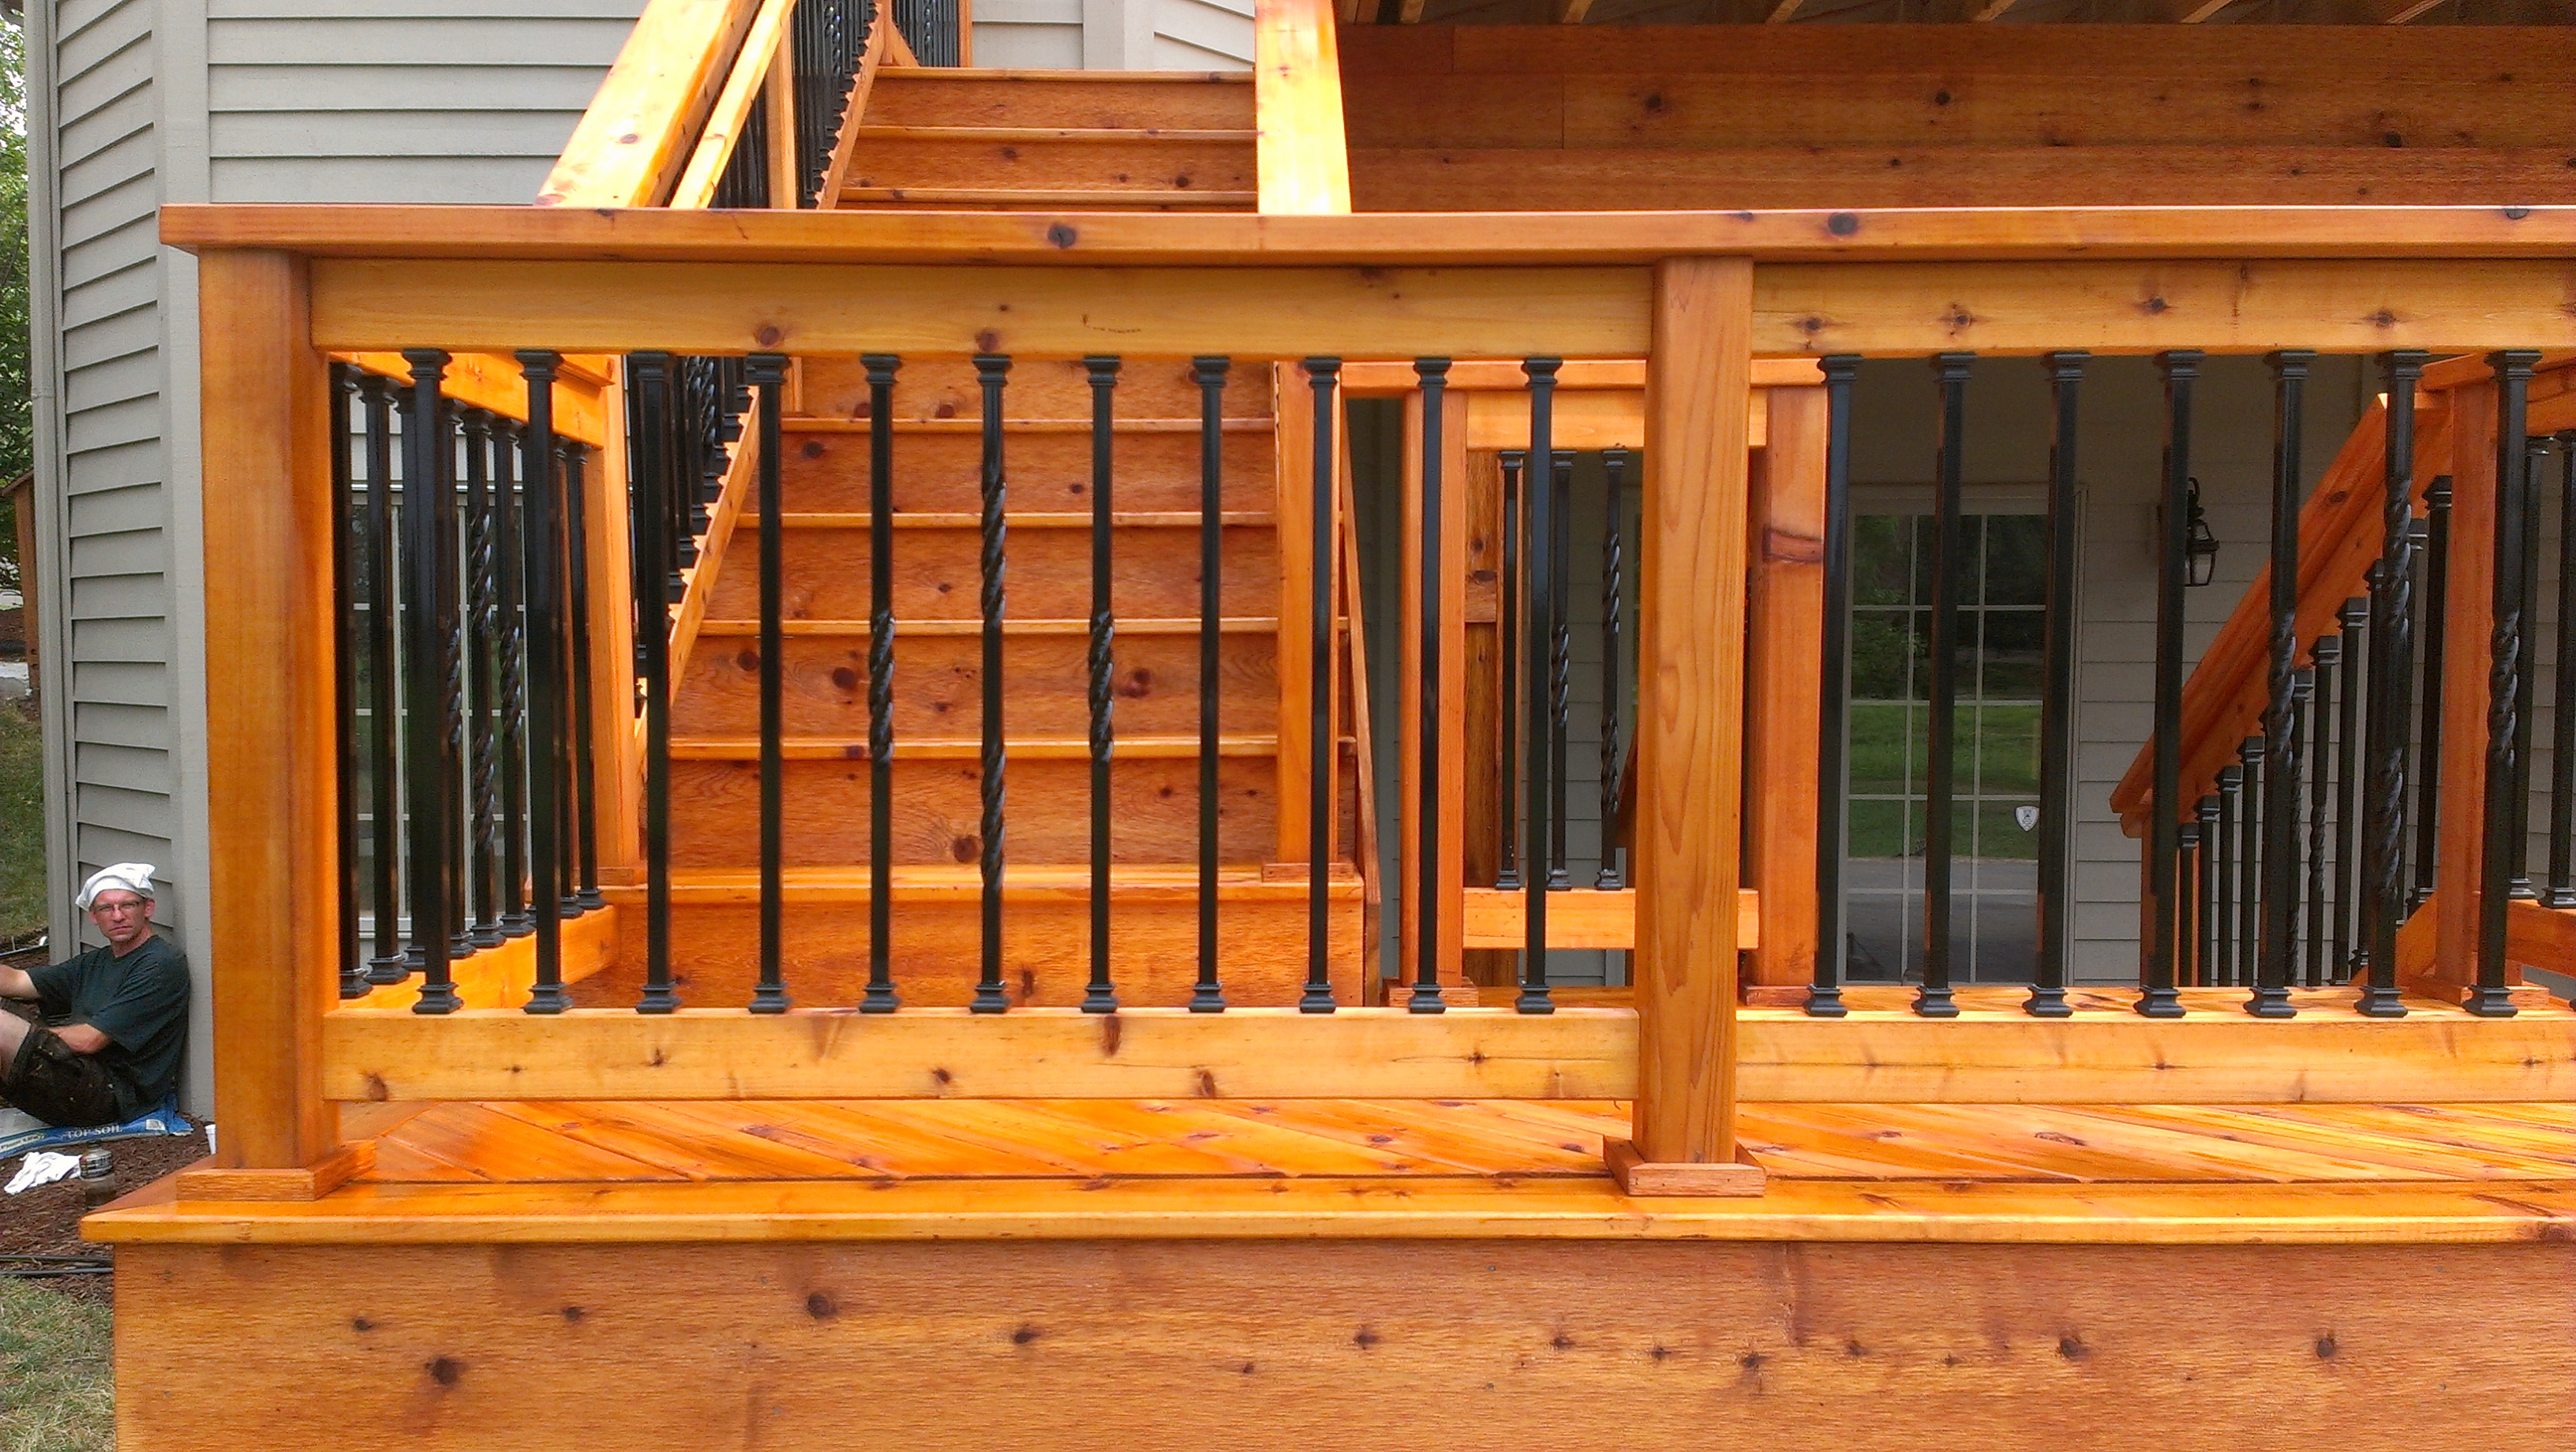 Deck Railings Railing Systems Wood Composite Metal Throughout Sizing 3264 X 1840